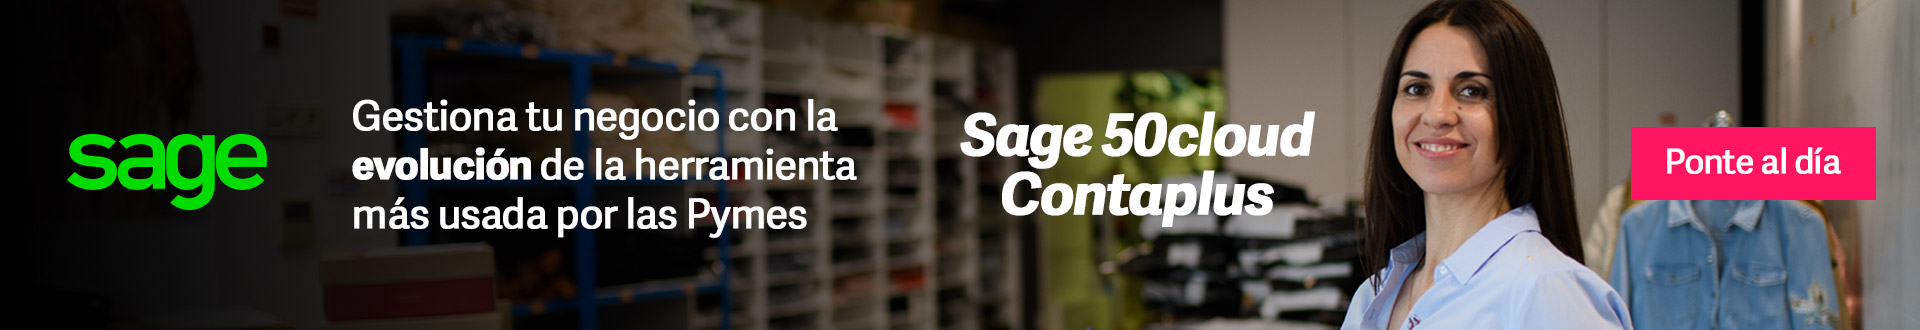 SAGE 50cloud ContaPlus